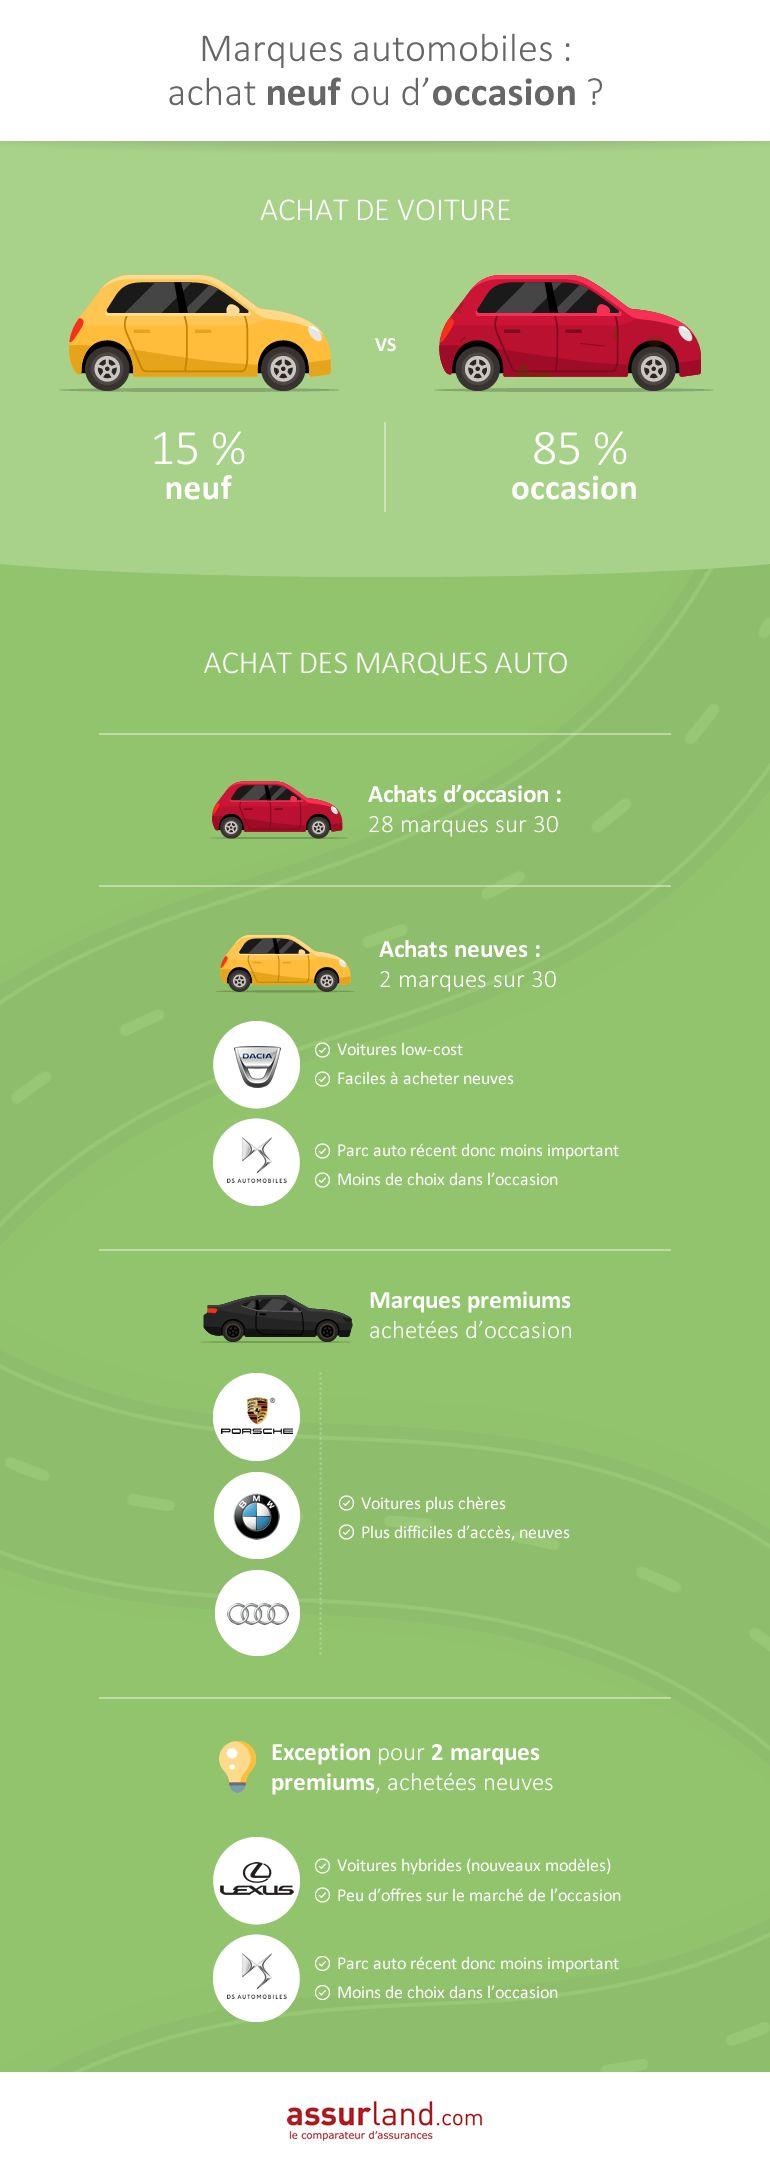 infographie marques auto neuves occasion